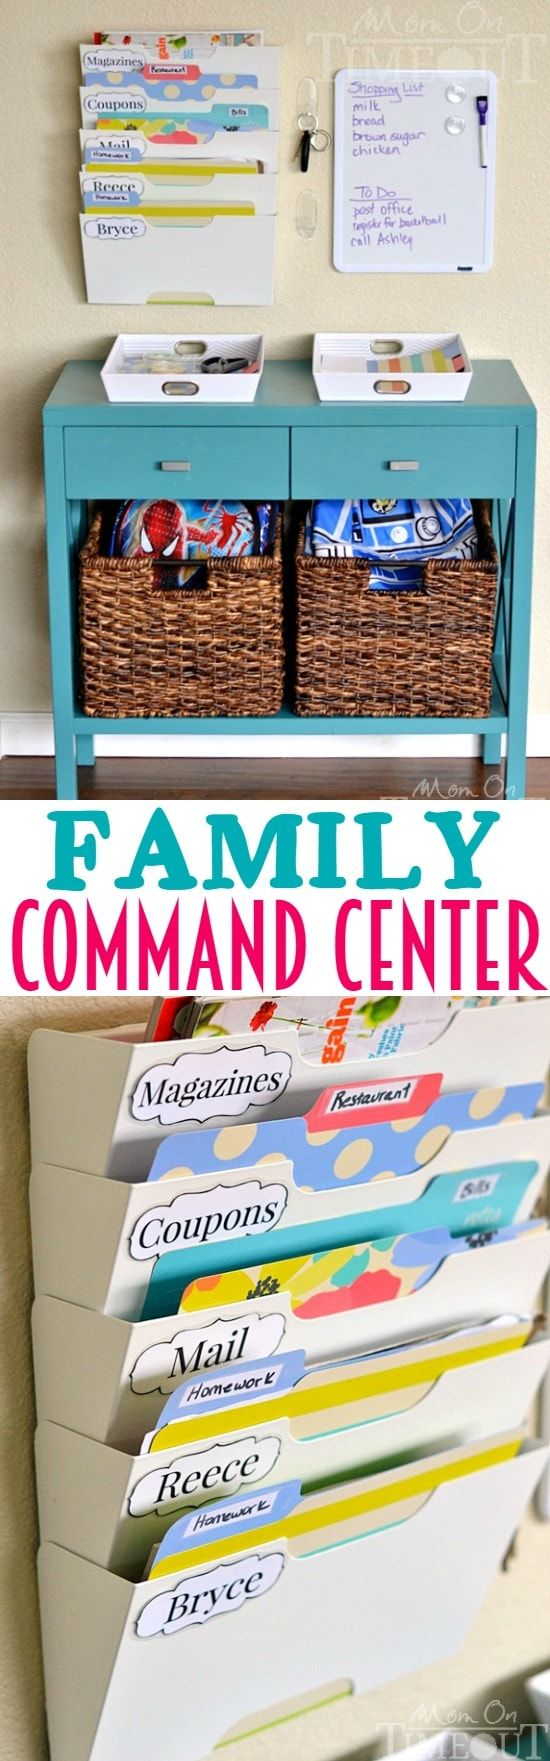 Banish the clutter and get the whole family organized with this DIY Family Command Center! | MomOnTimeout.com | #organization #diy #craft #MakeAmazing #spon